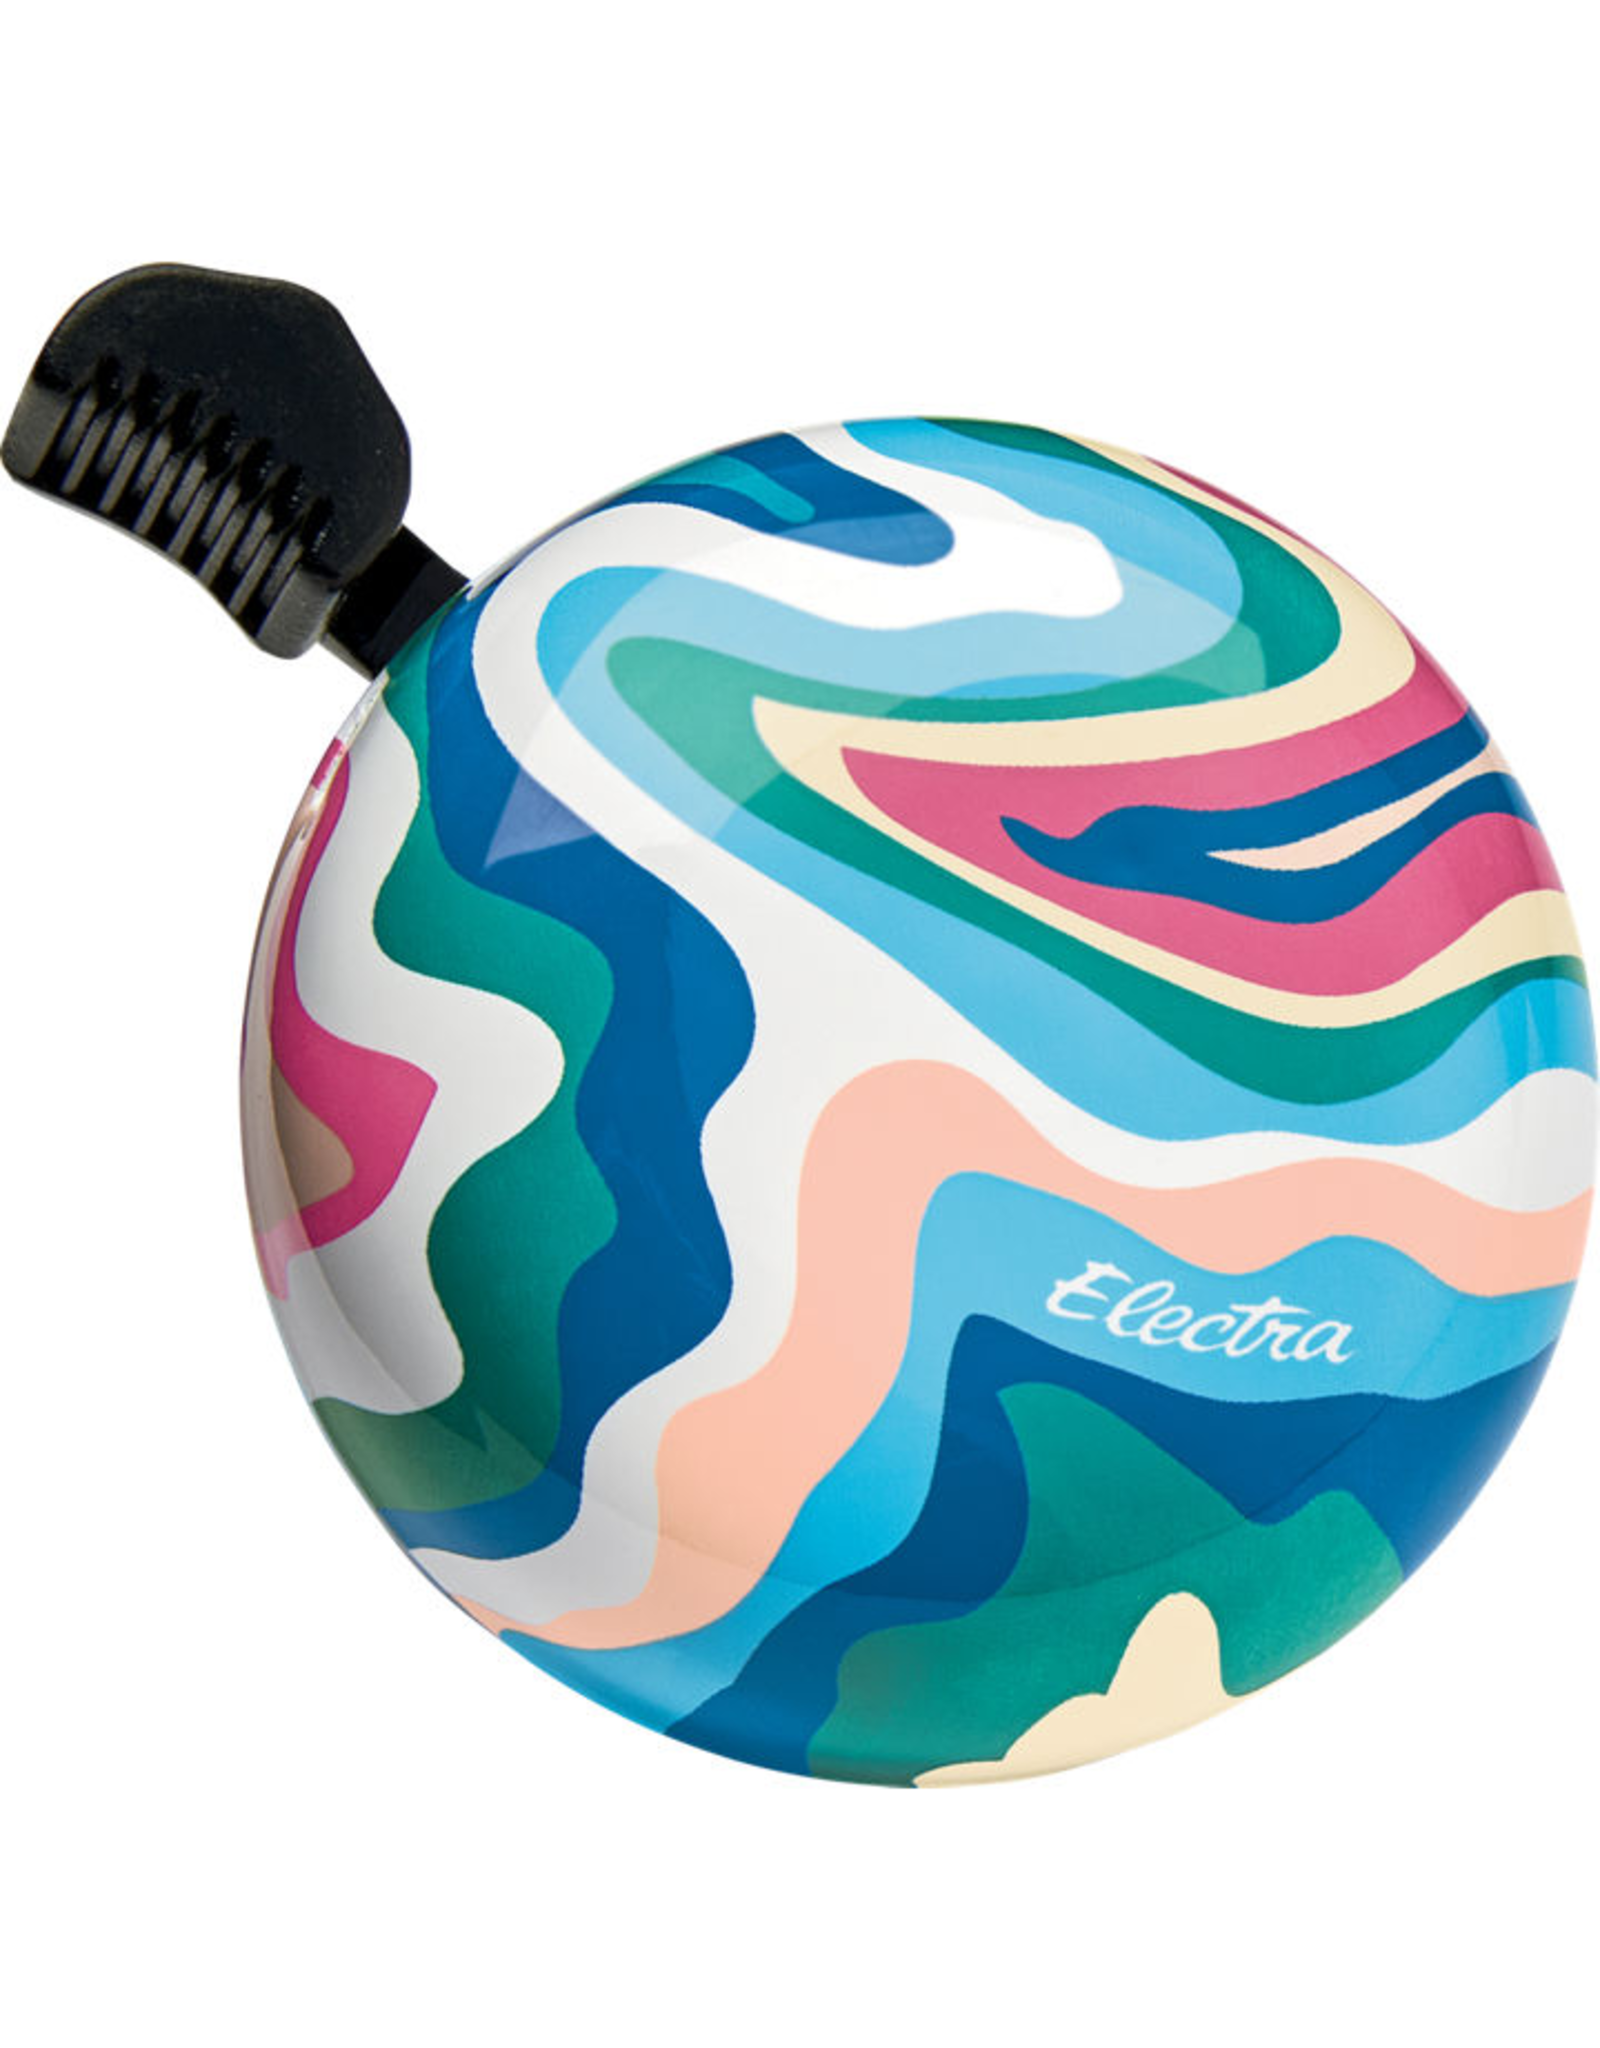 Electra Electra Domed Bell - Swirl Ringer